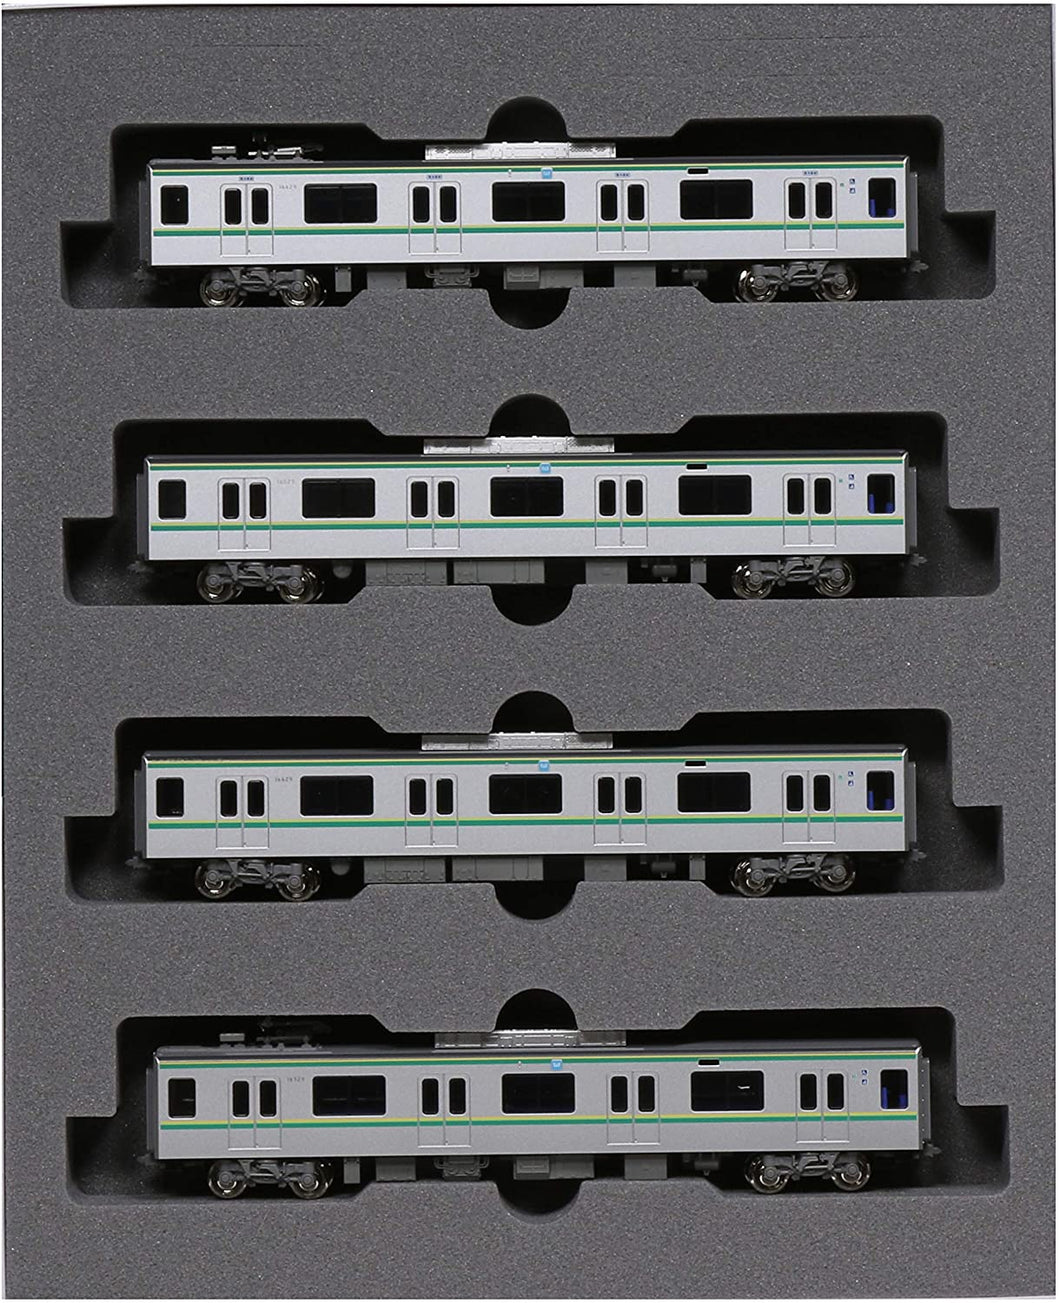 Kato 10-1606 Tokyo Metro Chiyoda Line Series 16000(5th) 4-Car Add-on Set N Scale